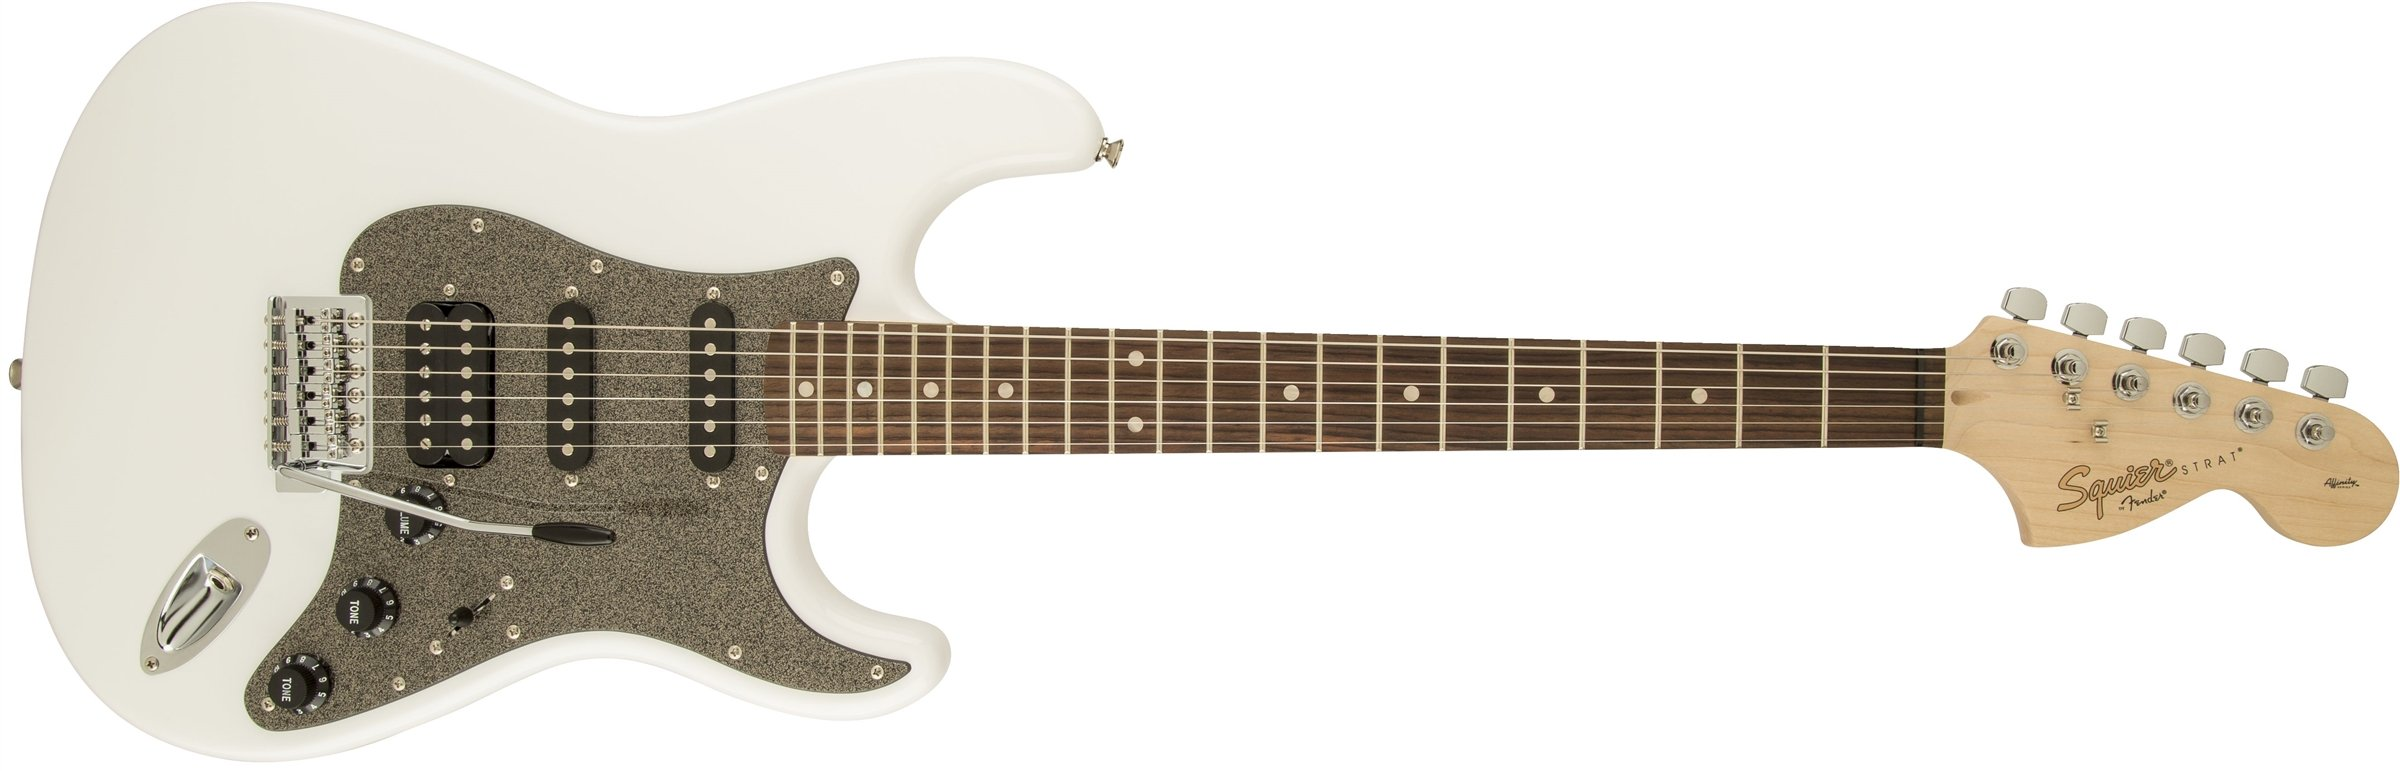 Squier by Fender Affinity Stratocaster Beginner Electric Guitar HSS - Rosewood Fingerboard, Olympic White